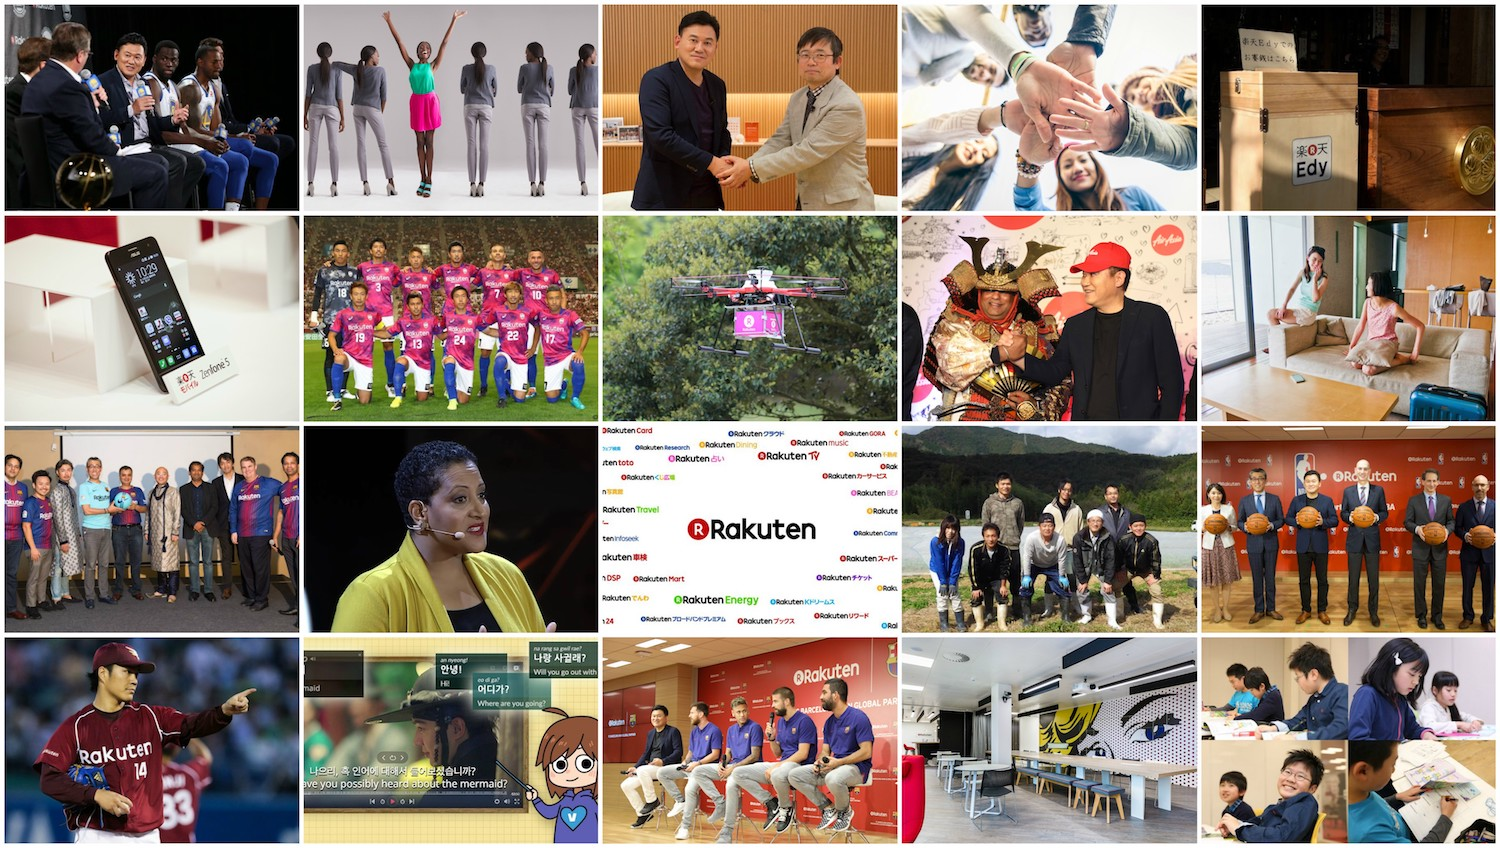 Rakuten's 20th year was one of the company's busiest – with groundbreaking partnerships with two of the world's highest profile sports teams being highlights.